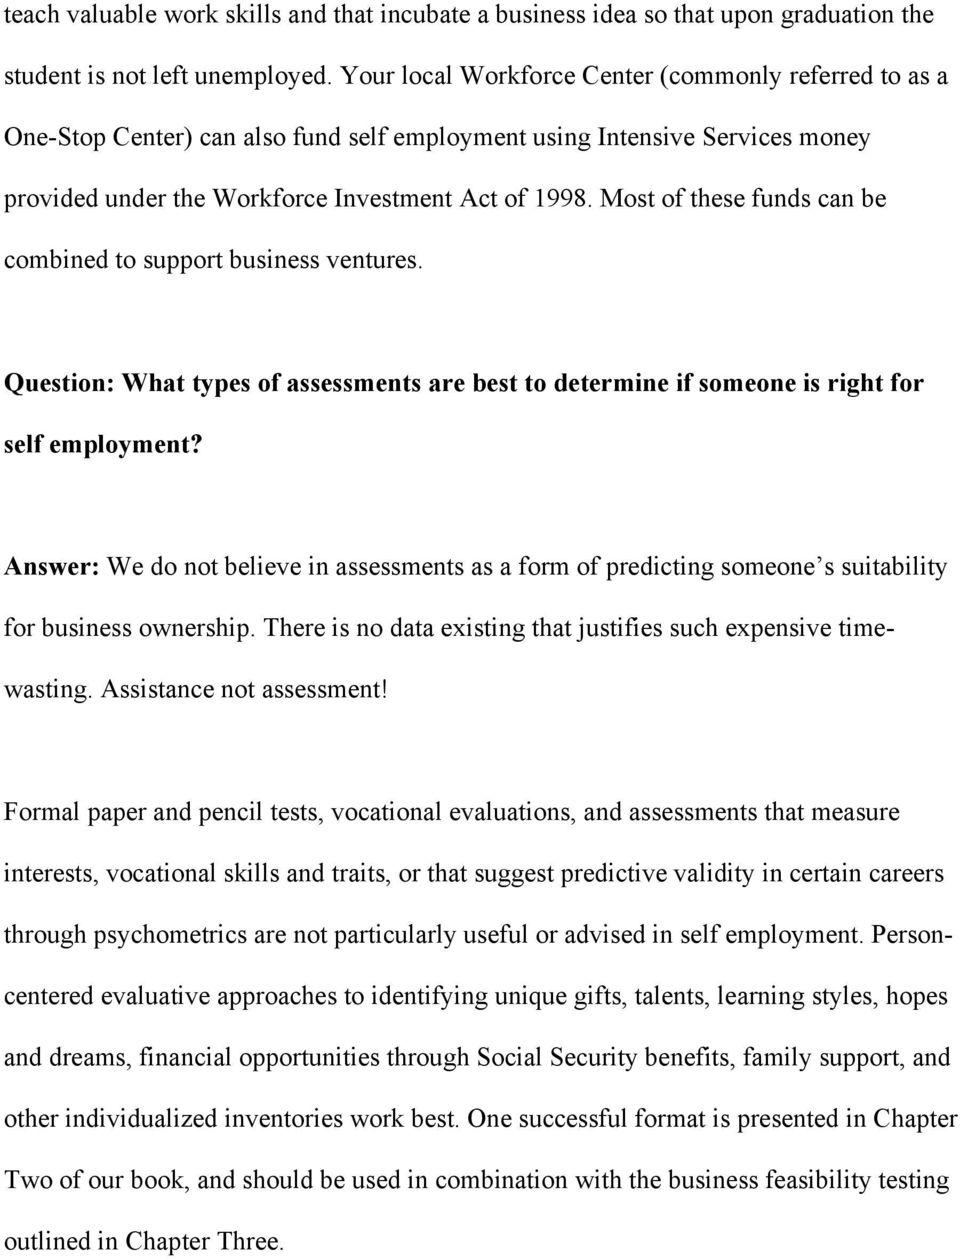 Most of these funds can be combined to support business ventures. Question: What types of assessments are best to determine if someone is right for self employment?